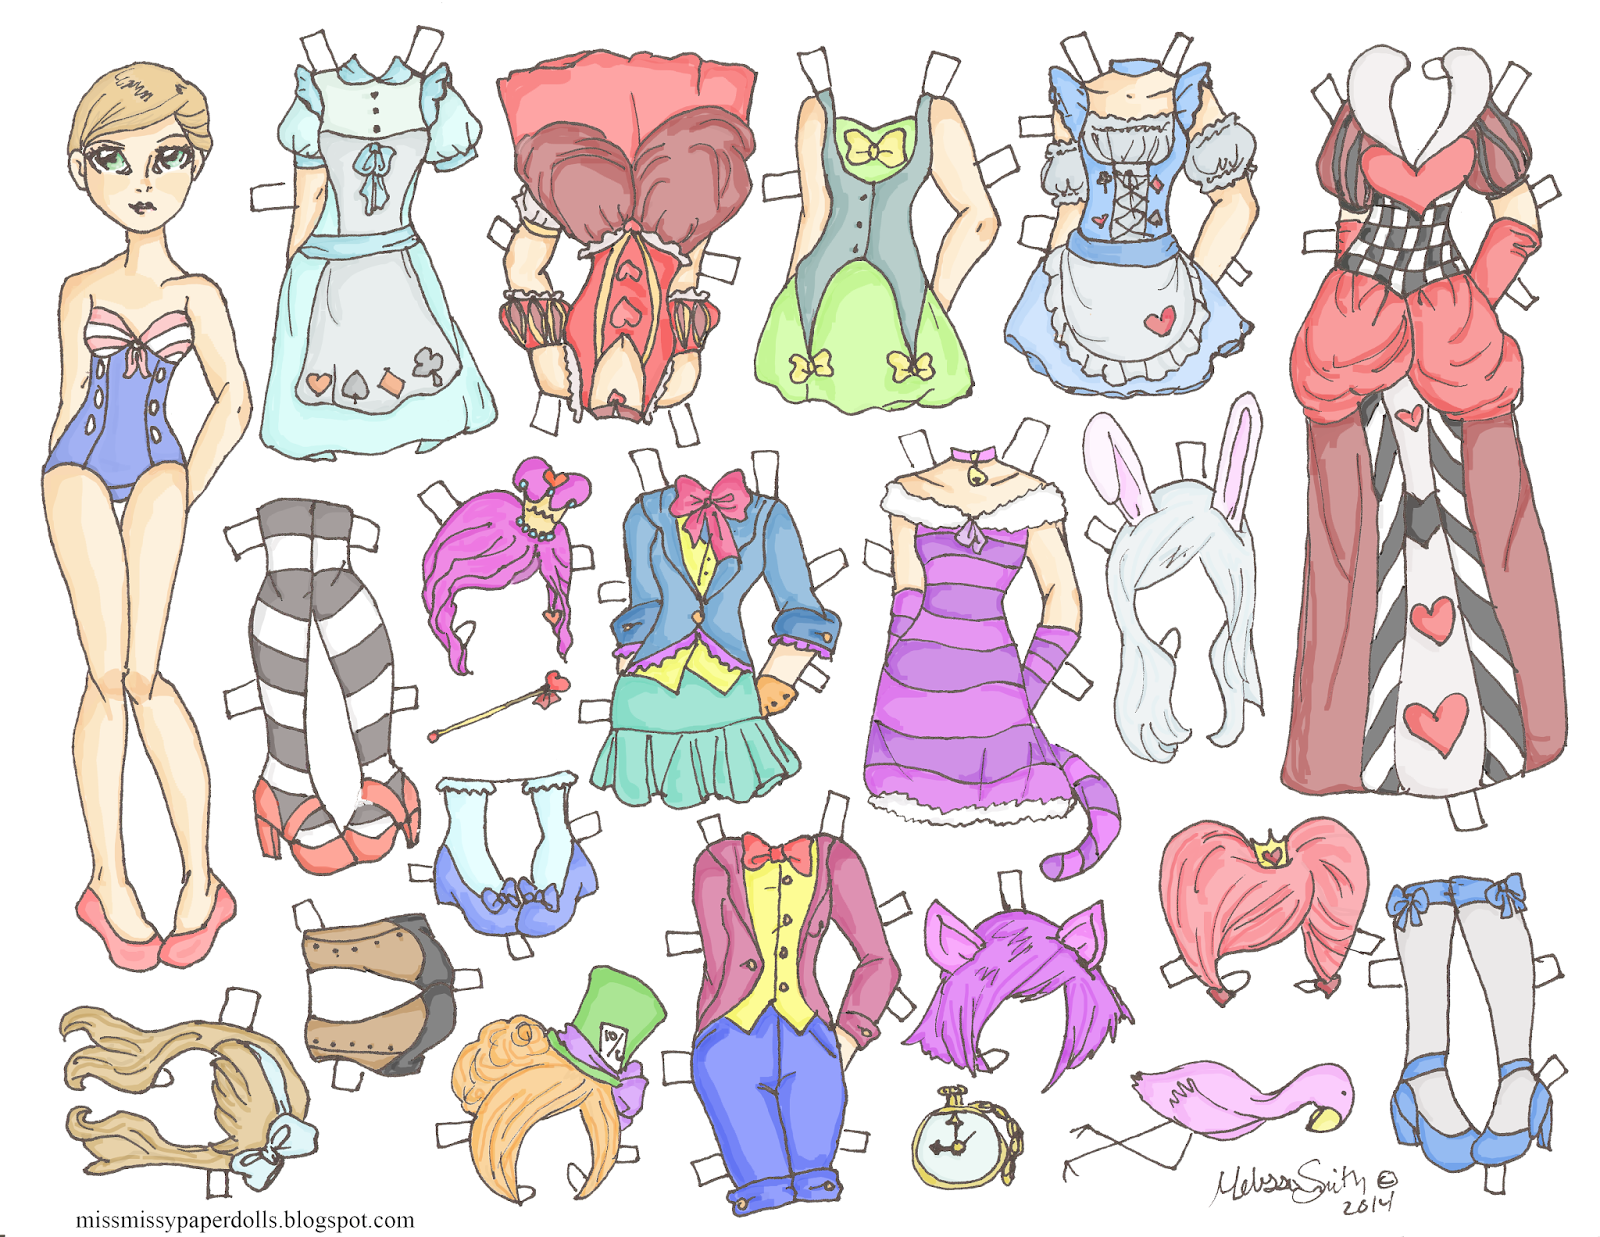 Miss Missy Paper Dolls: October 2014